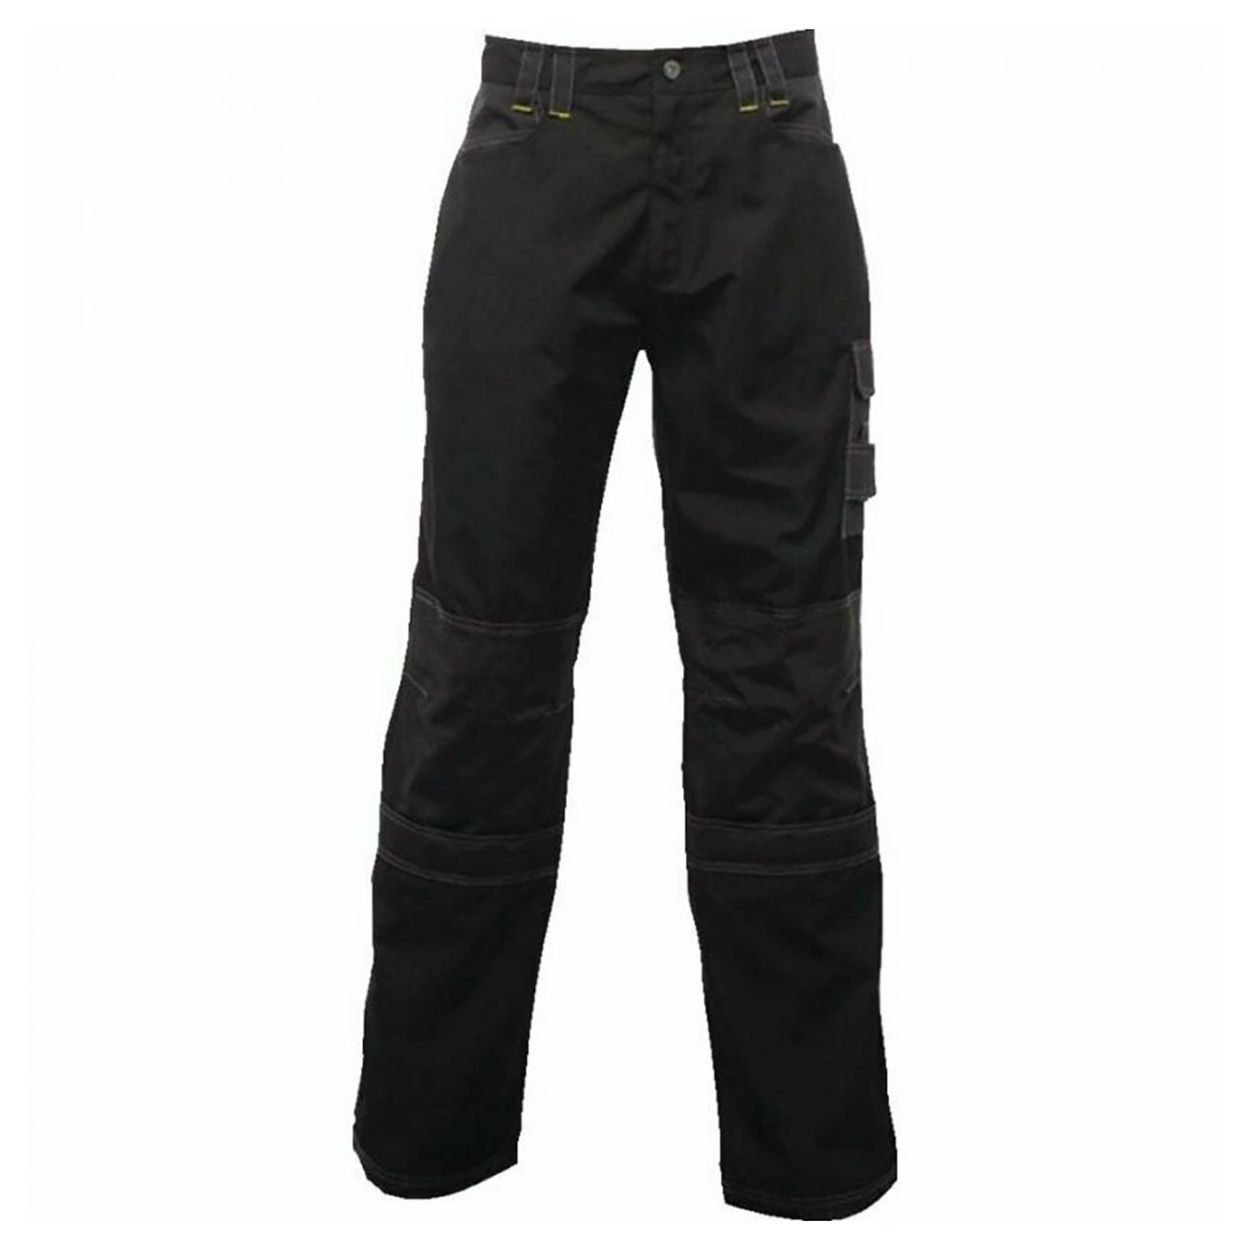 Regatta-Mens-Holster-Workwear-Trousers-Short-Regular-And-Long-UTRW3202